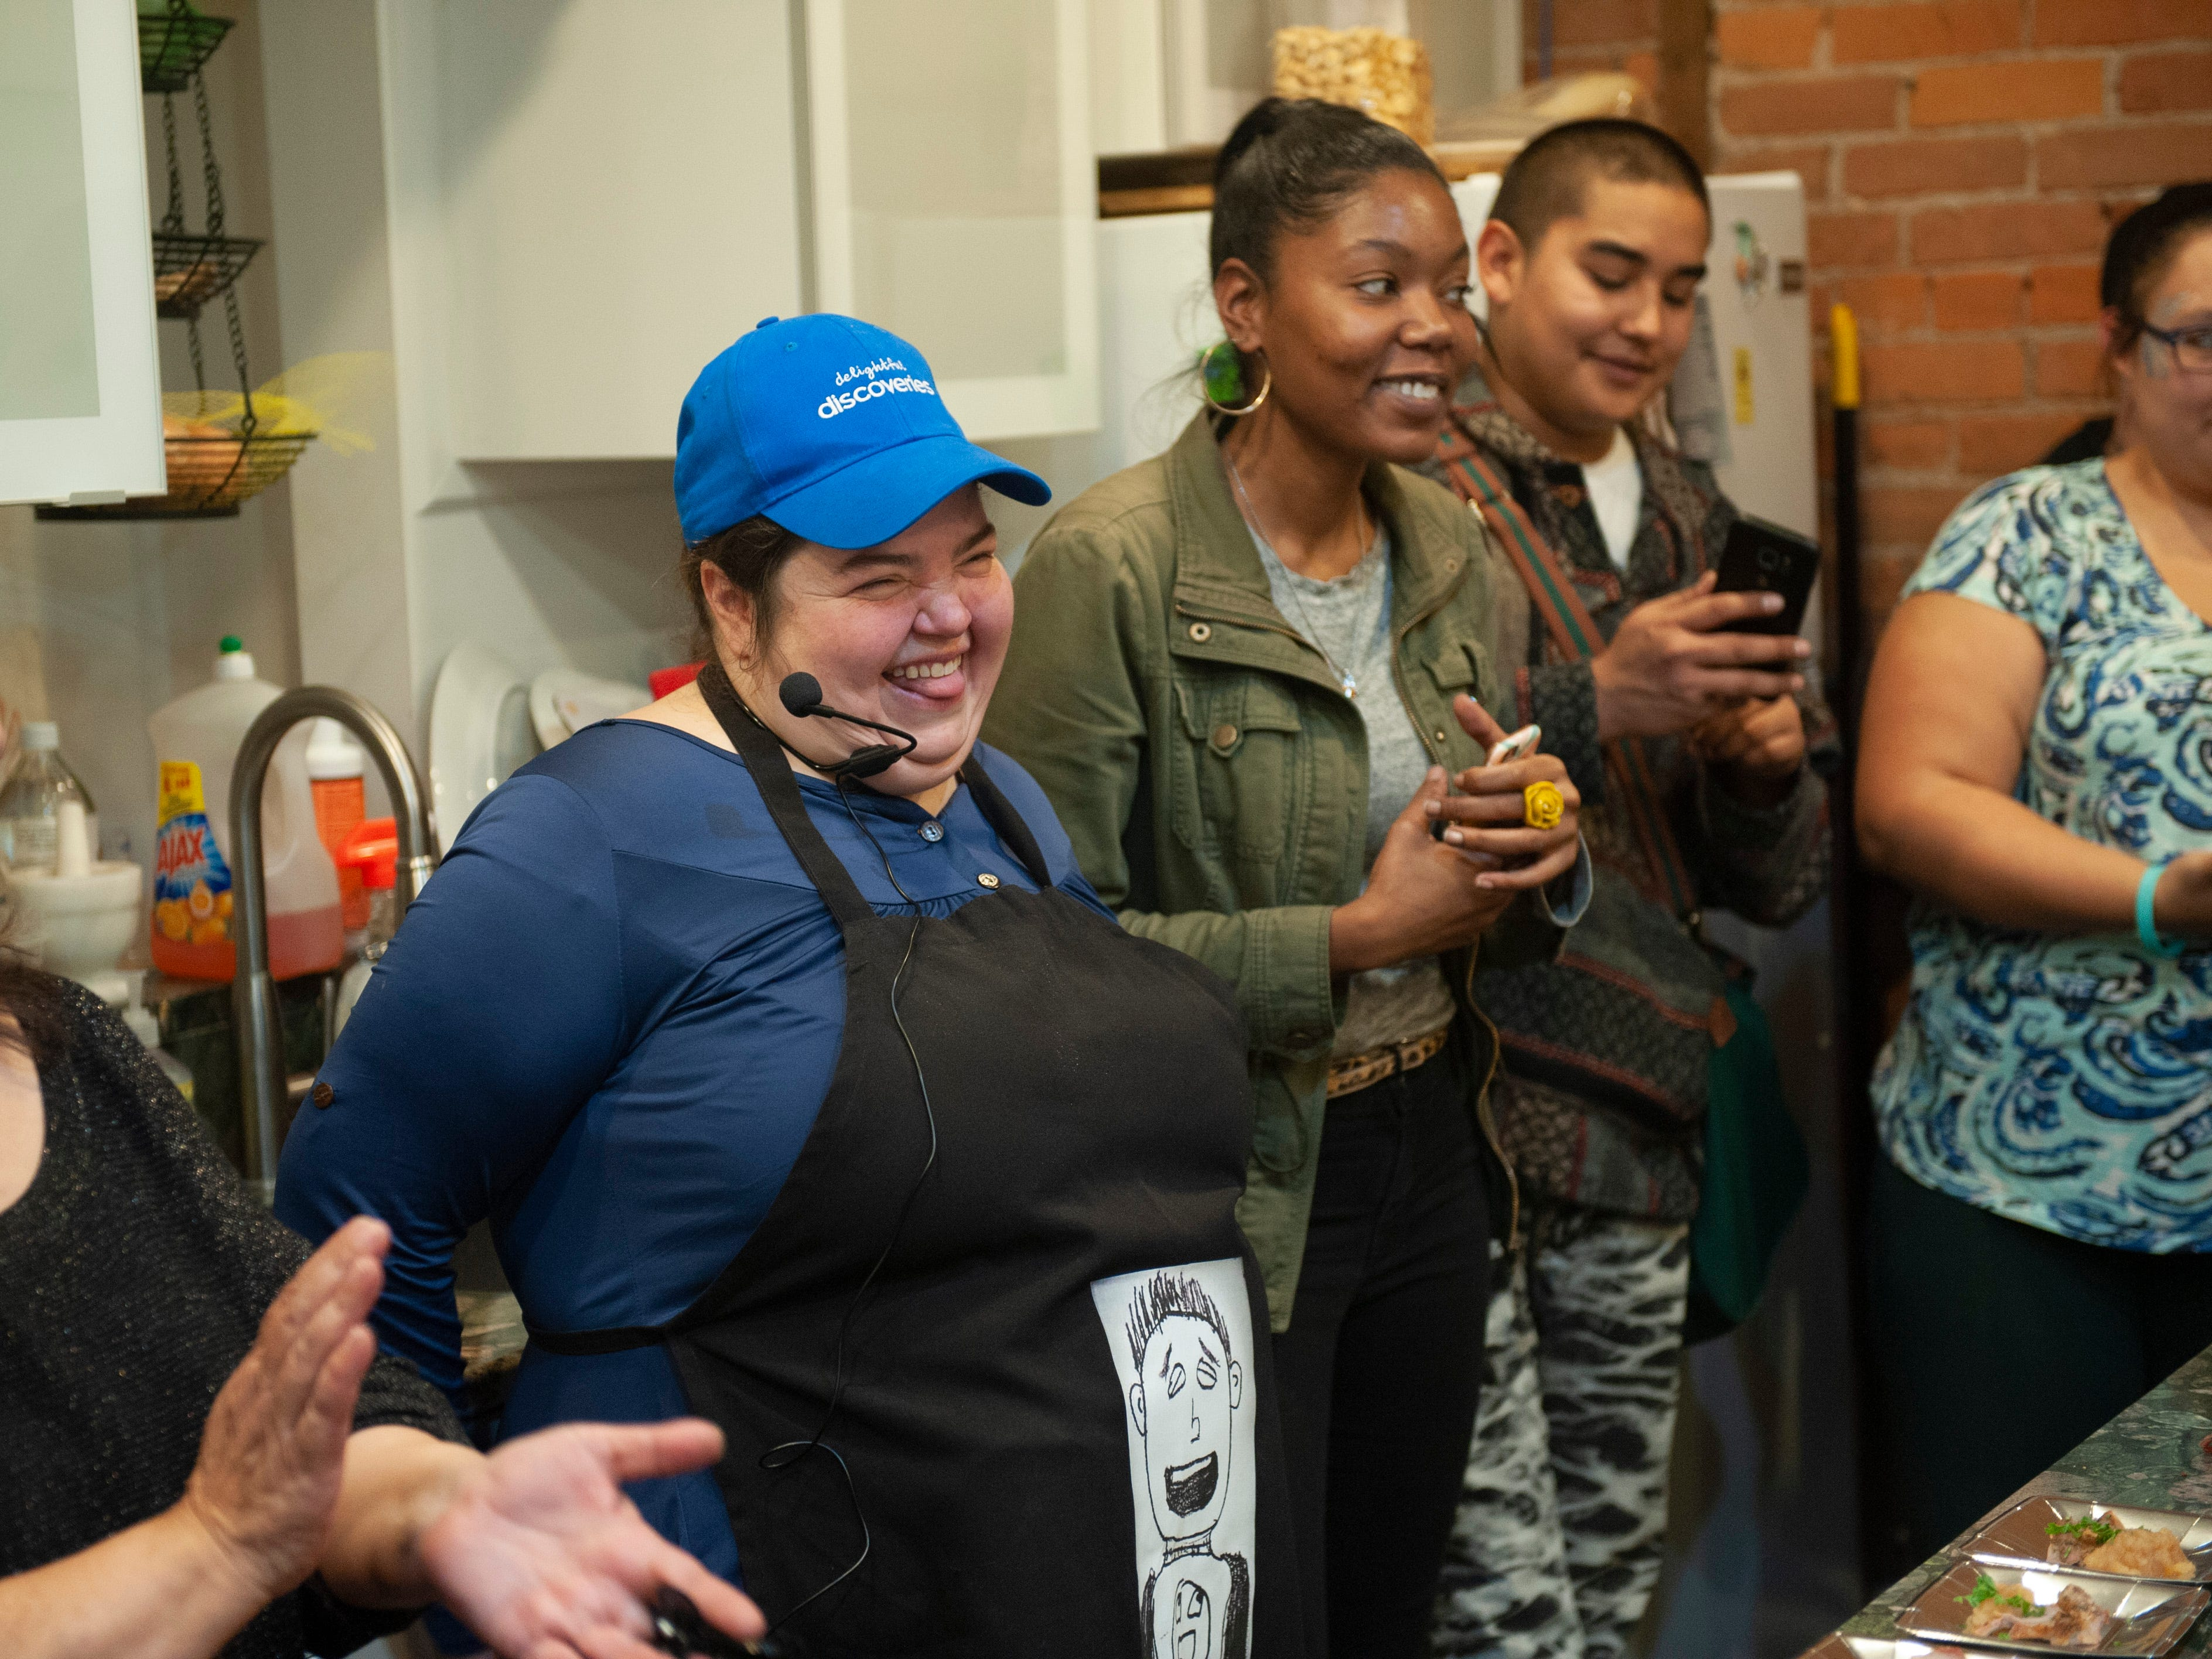 """Cannabis chef Karla Galli, center, of Krispy Treats Kitchen smiles as she is introduced to the party guests at the beginning of """"The Art of Cannabis"""" tasting and art exhibition at the Cannabis Counsel in Detroit."""